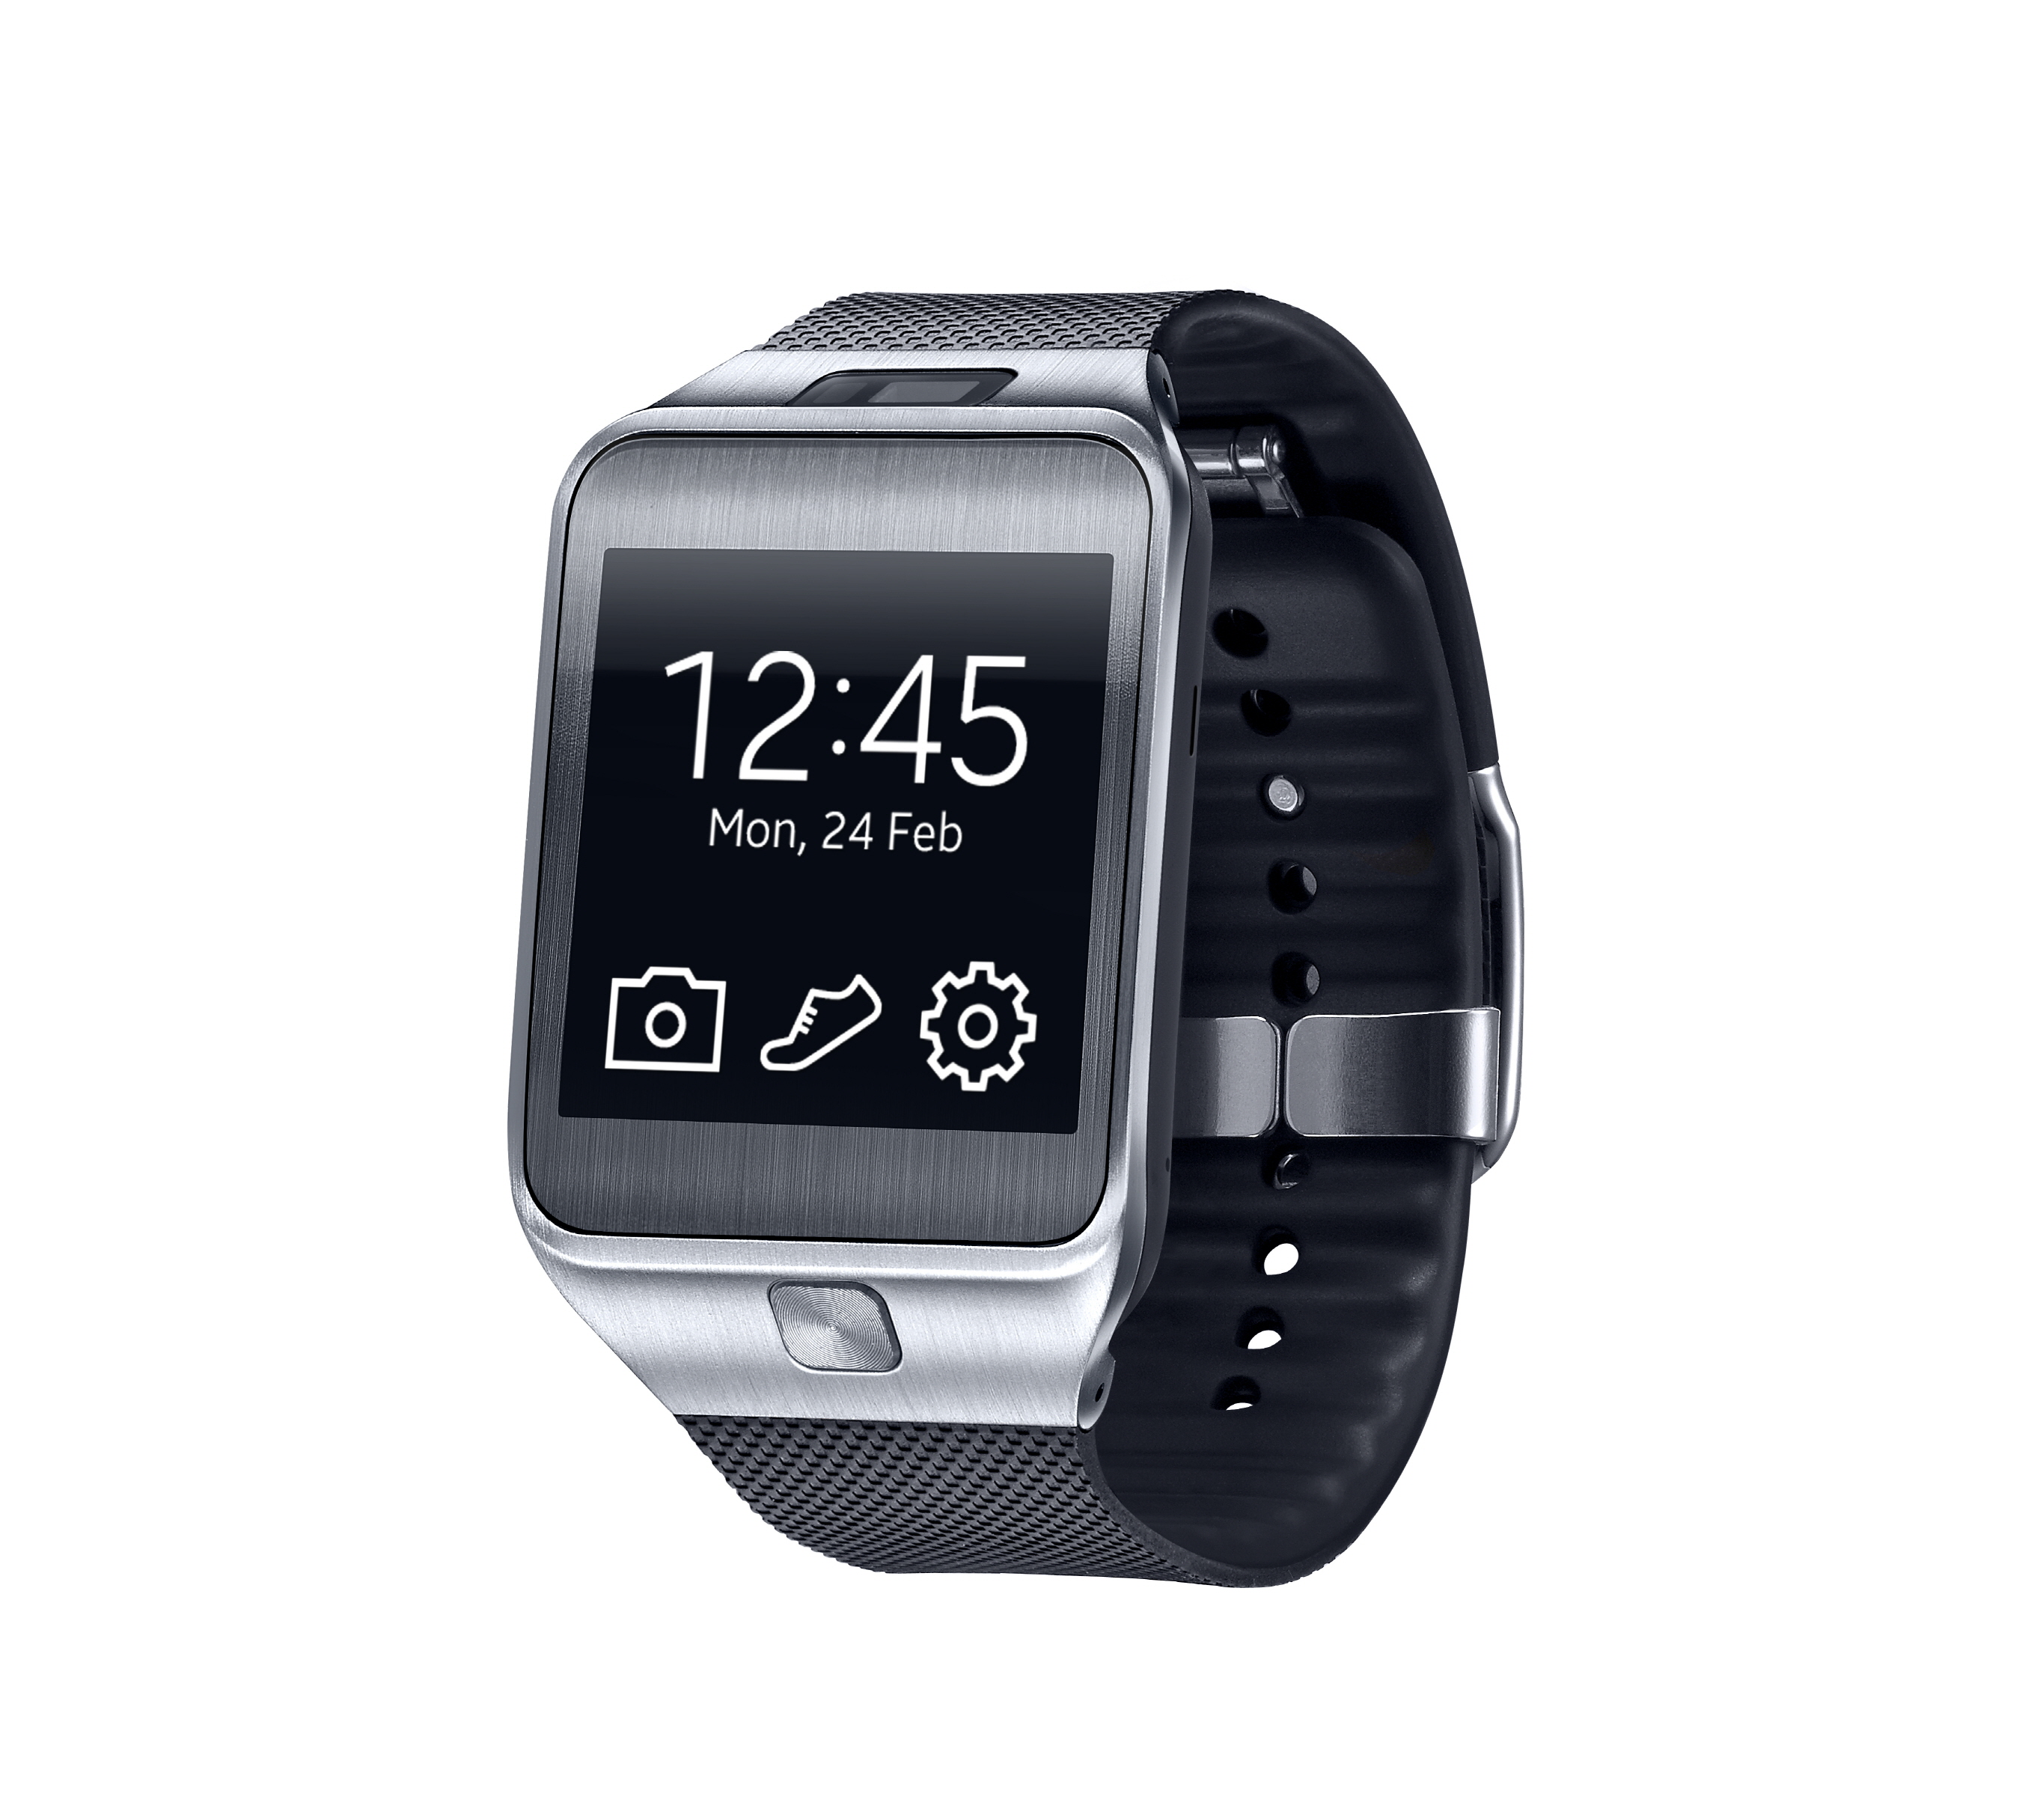 samsung galaxy gear 2 and galaxy gear 2 neo announced